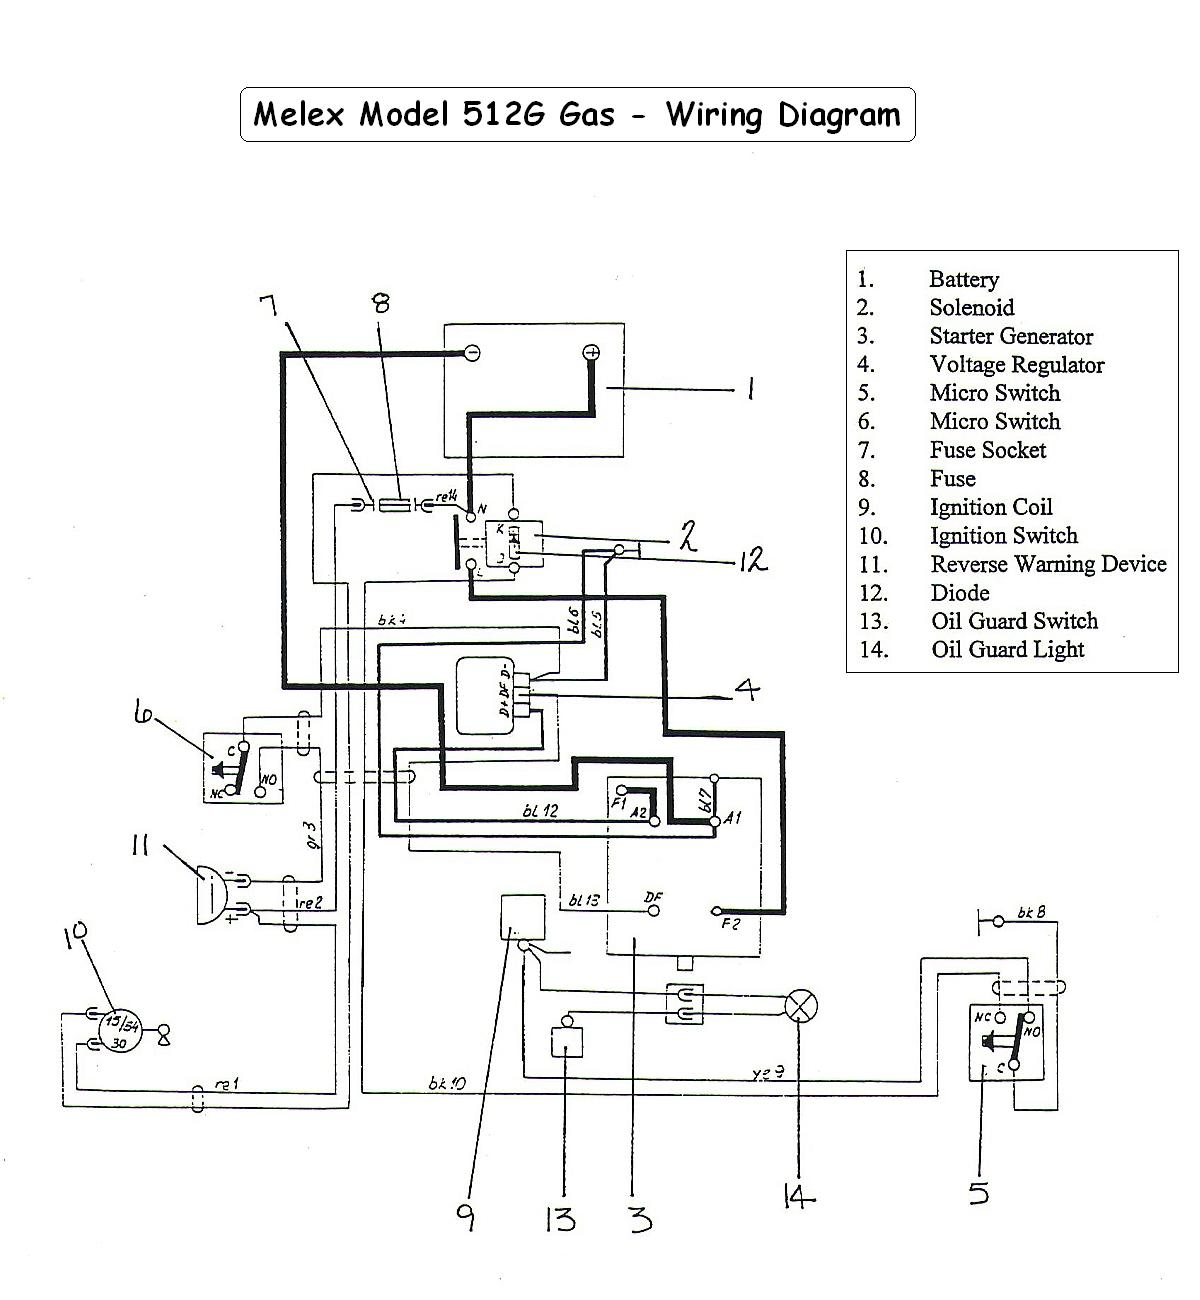 hight resolution of wiring diagram for melex 512 golf cart not lossing wiring diagram u2022 par car wiring diagram melex 512 wiring diagram